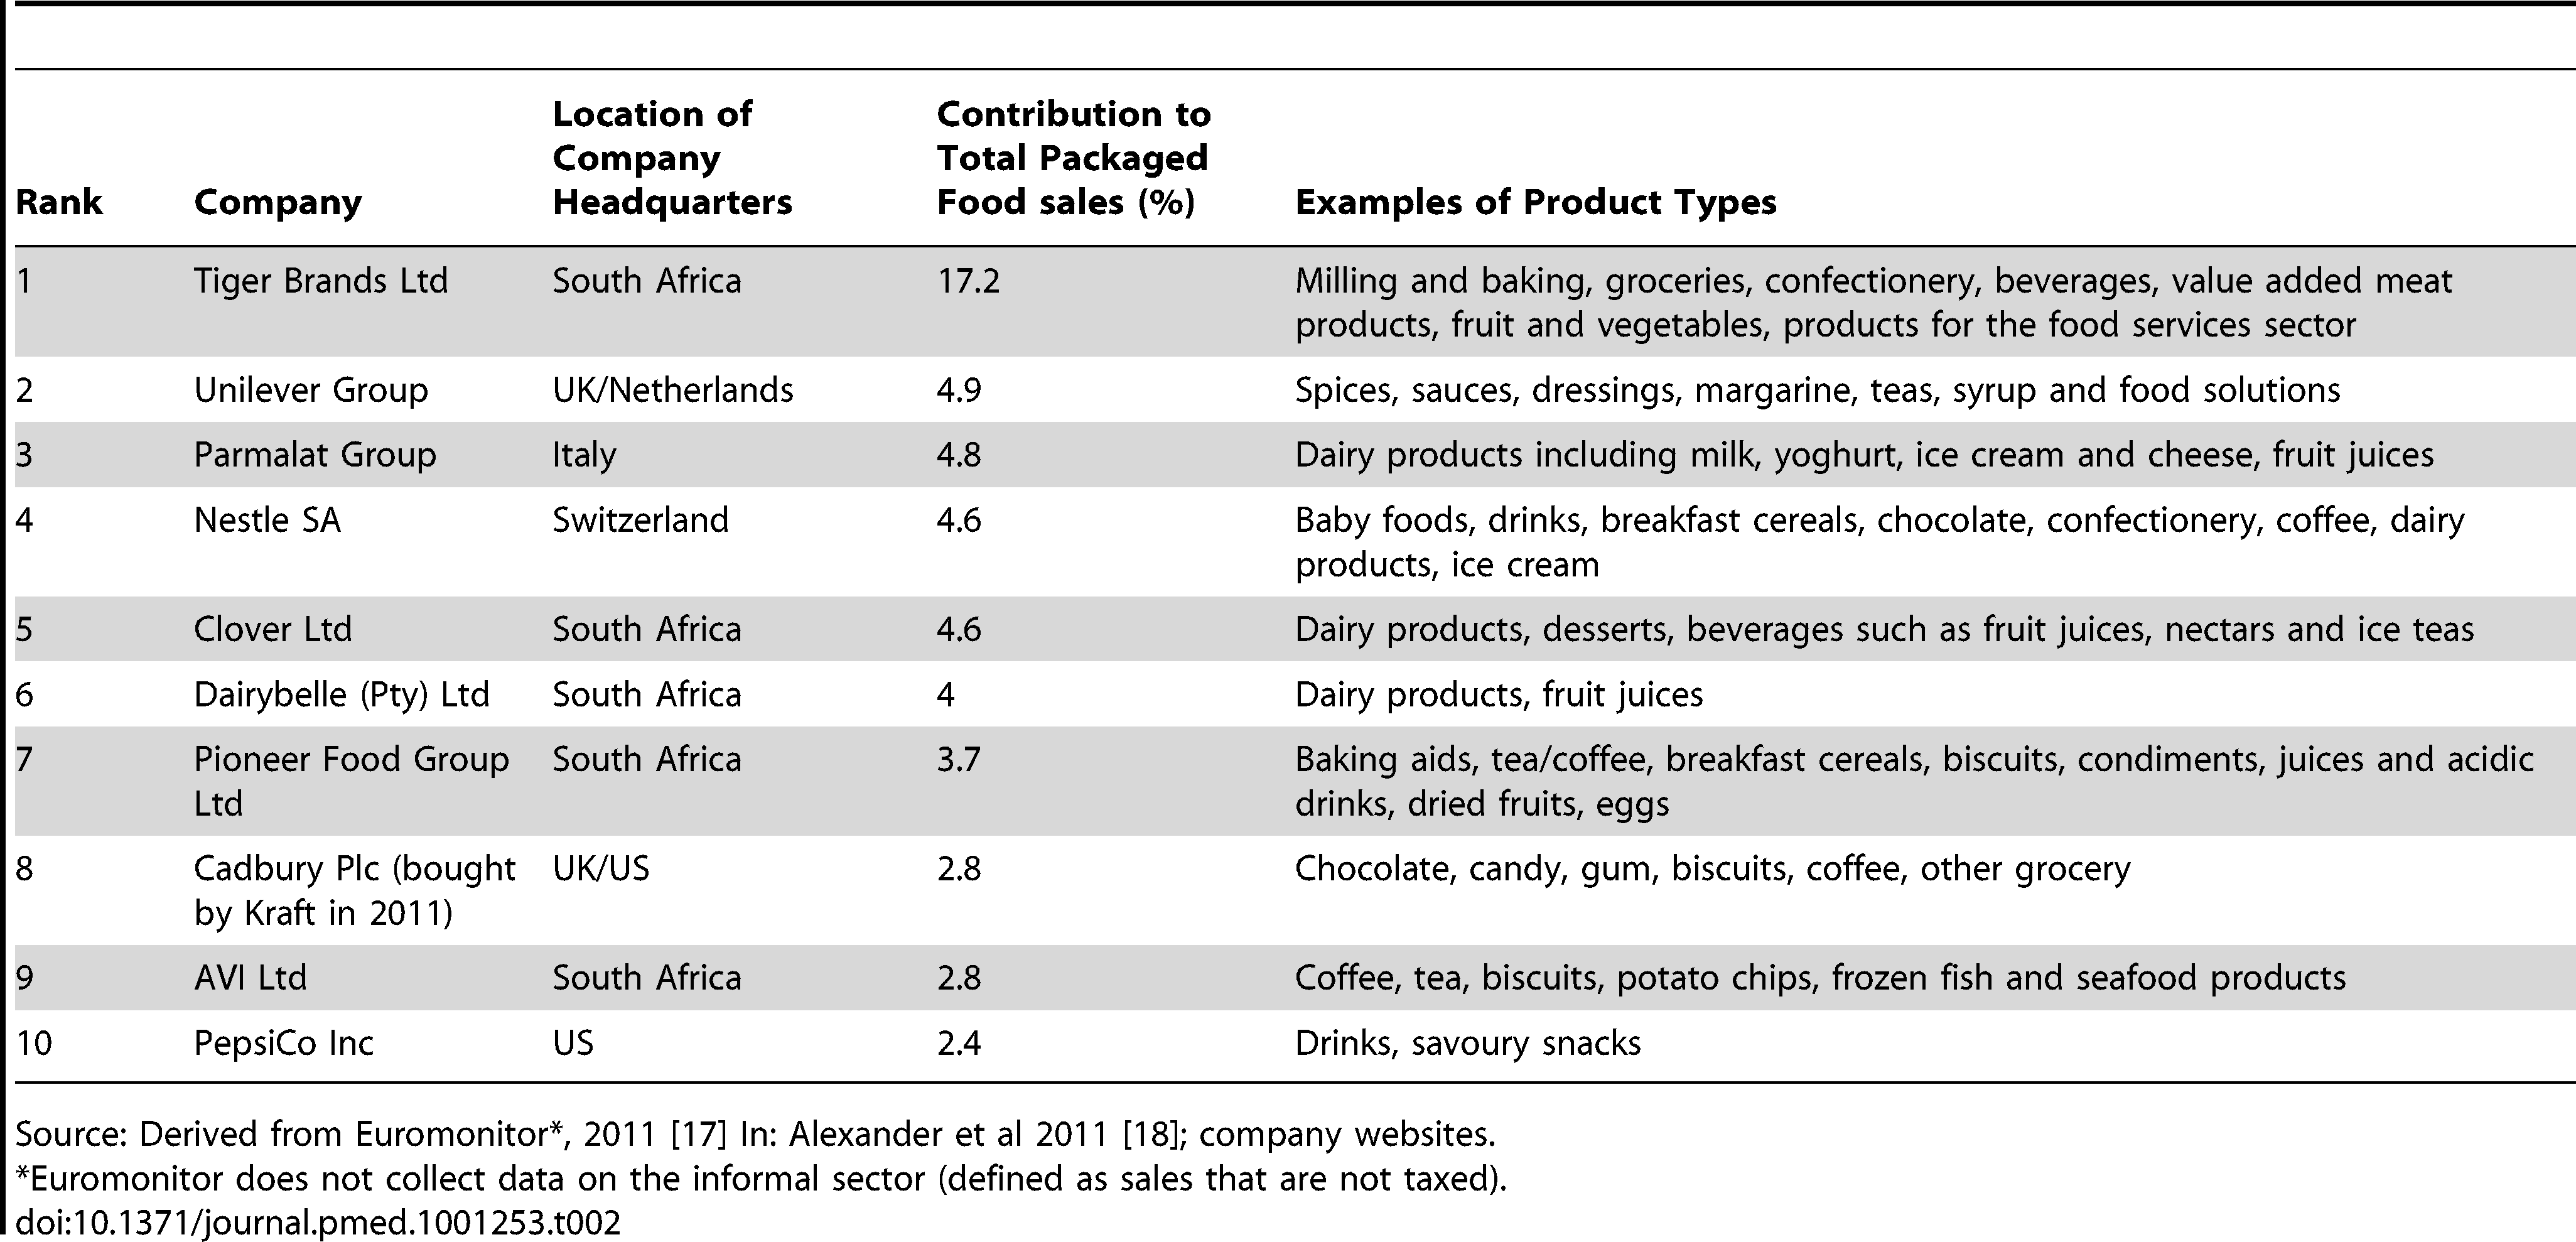 Packaged Food Company Shares in South Africa, 2009.